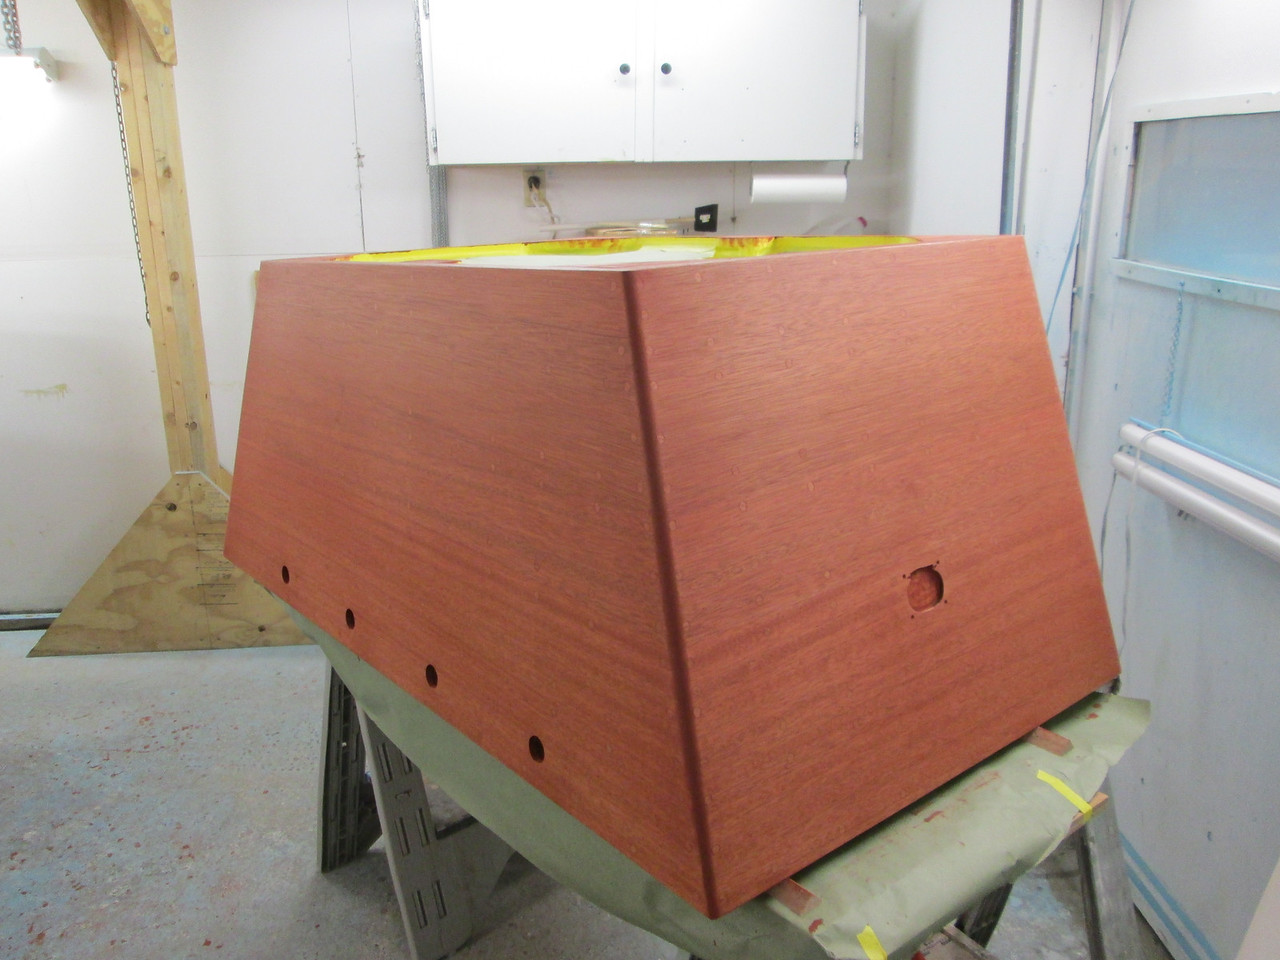 Engine box with stain applied.